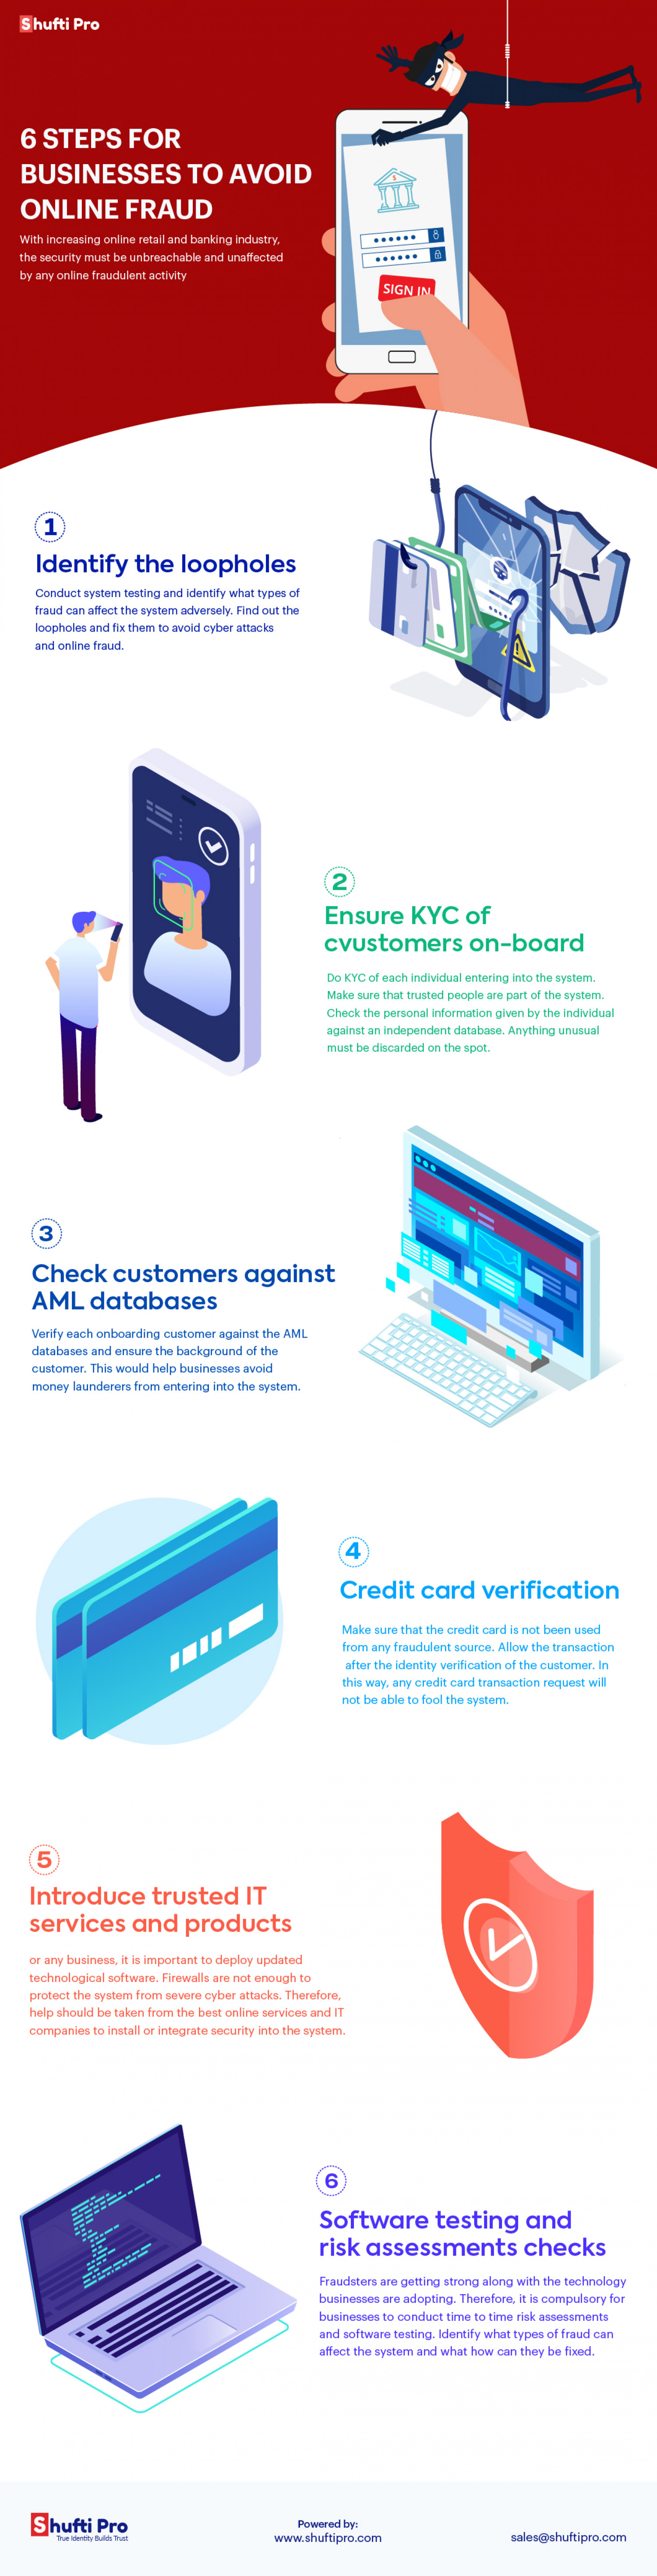 6 Steps That Businesses Can Adopt to Prevent Online Fraud Infographic